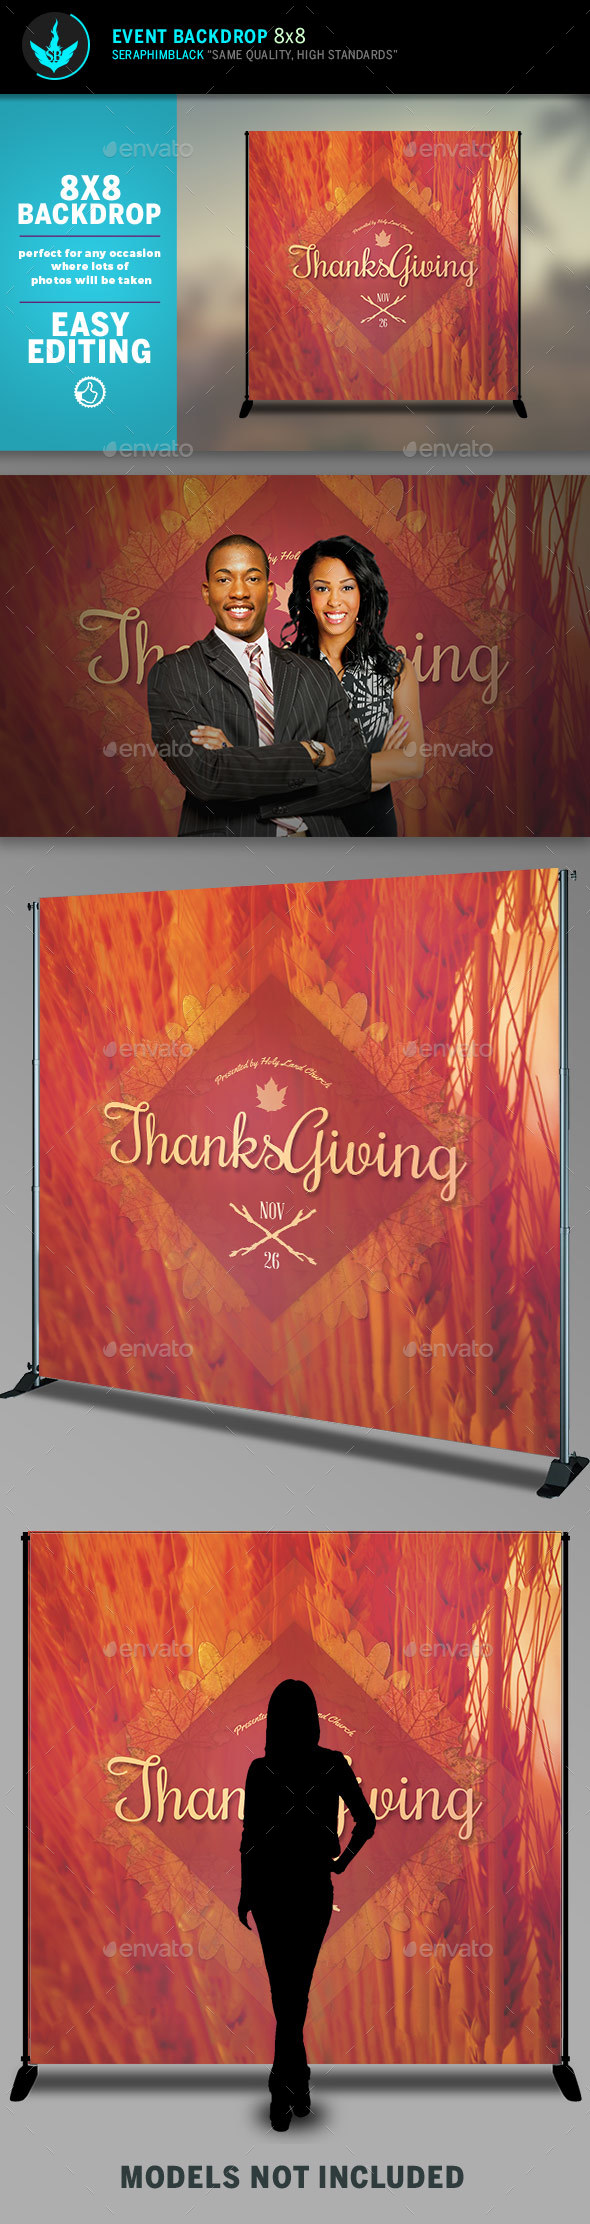 Thanksgiving 8x8 Event Backdrop Template - Signage Print Templates